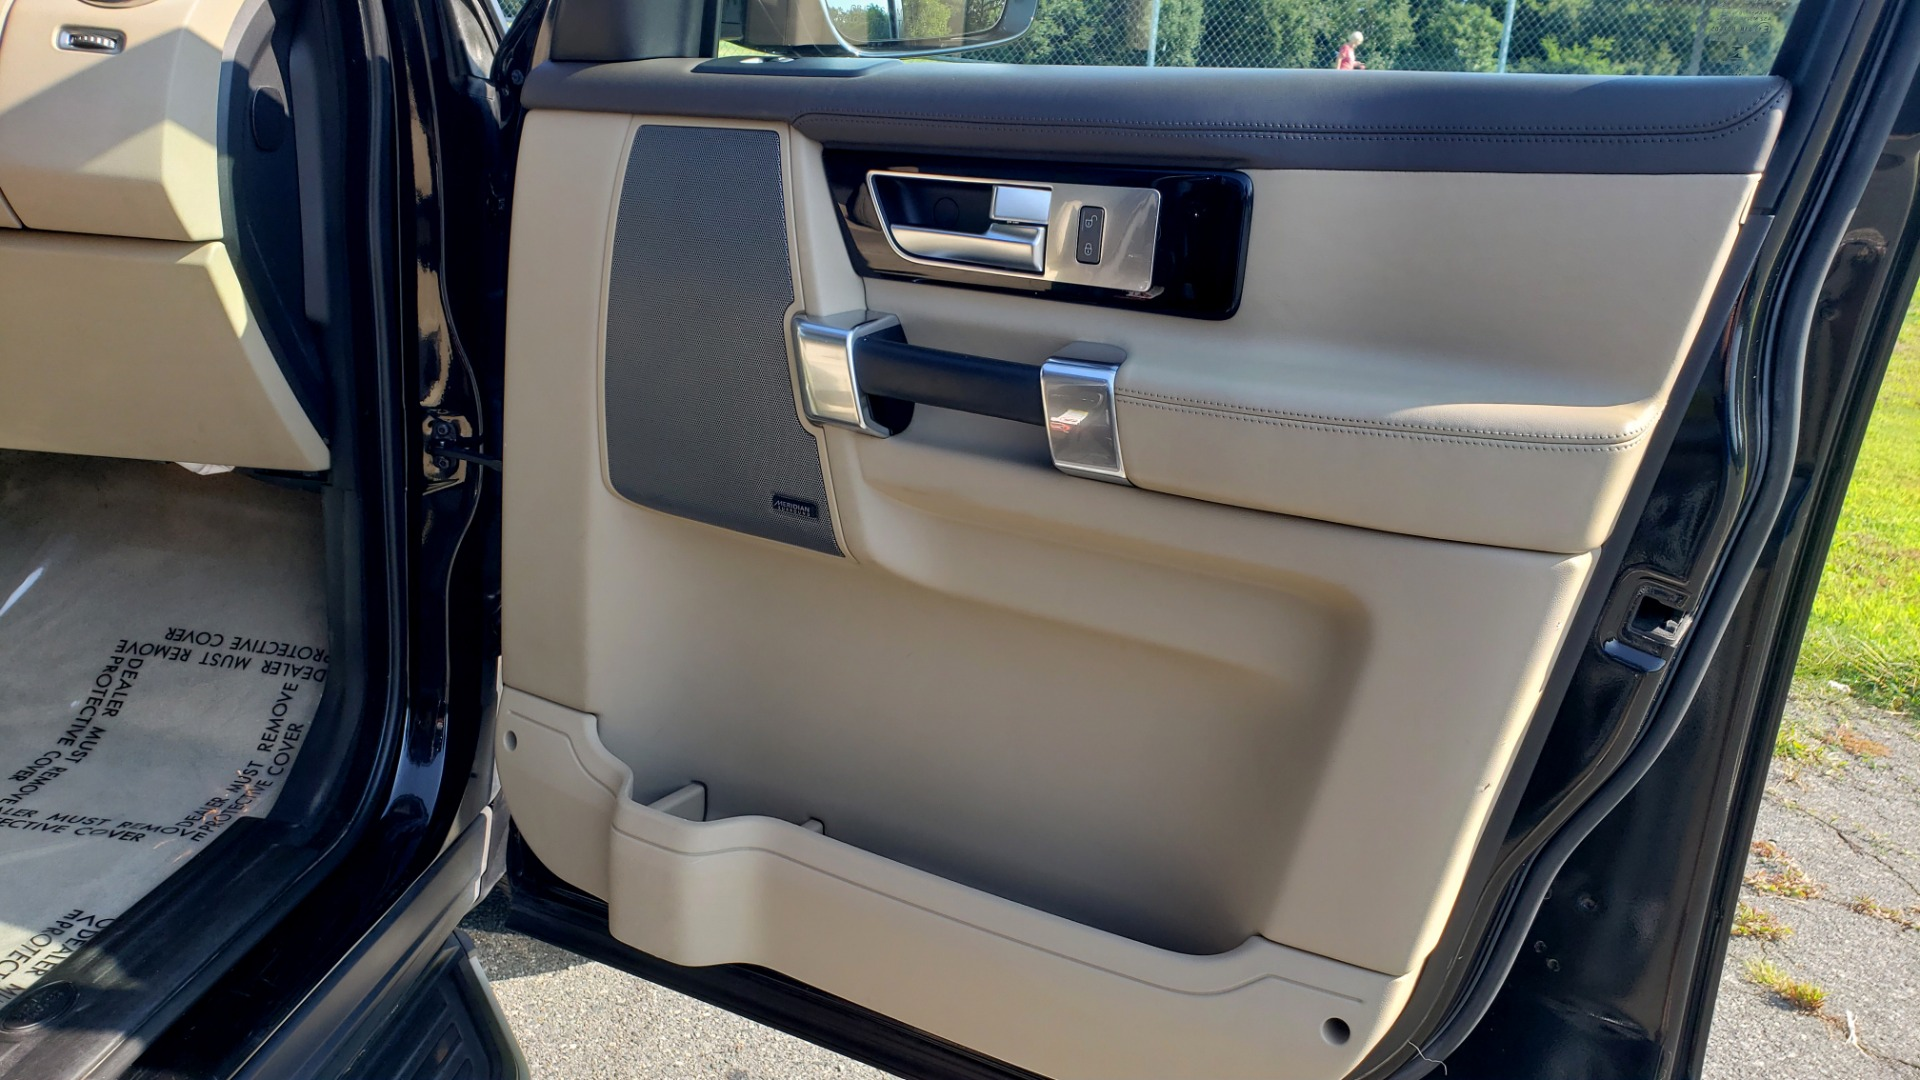 Used 2016 Land Rover LR4 HSE LUX LANDMARK EDITION / NAV / HTD STS / SUNROOF / REARVIEW for sale Sold at Formula Imports in Charlotte NC 28227 65